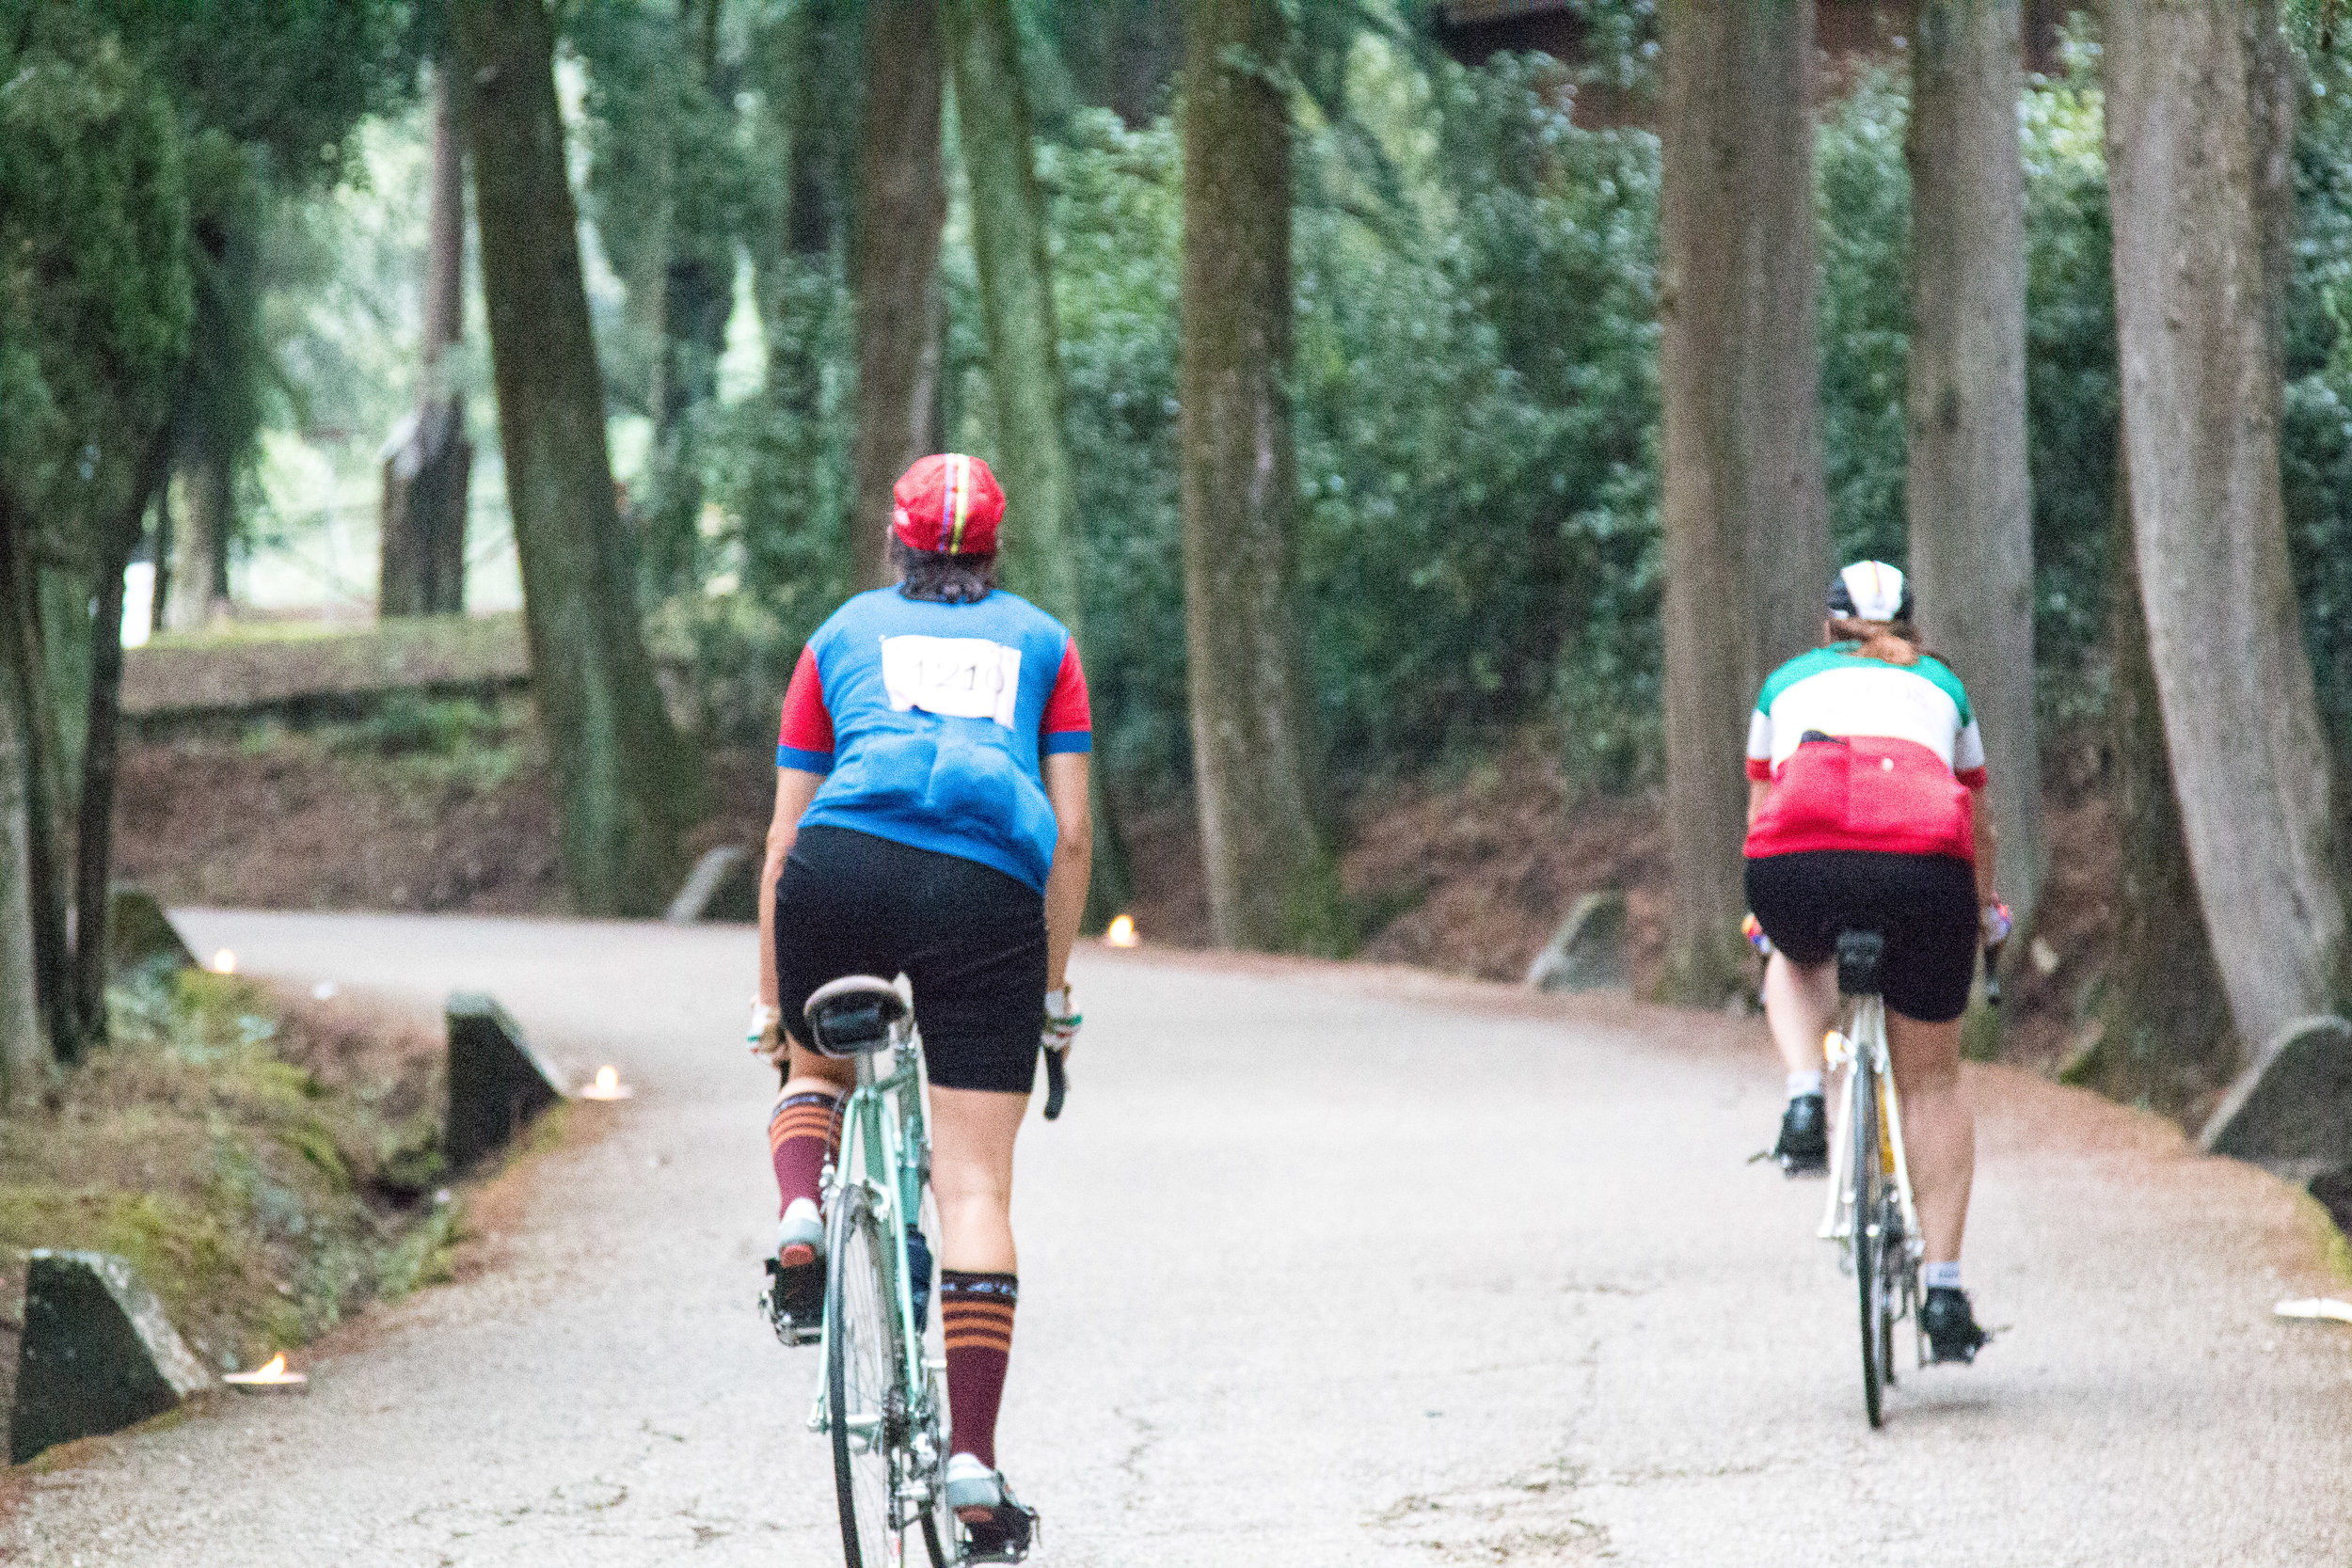 Into the strade bianche